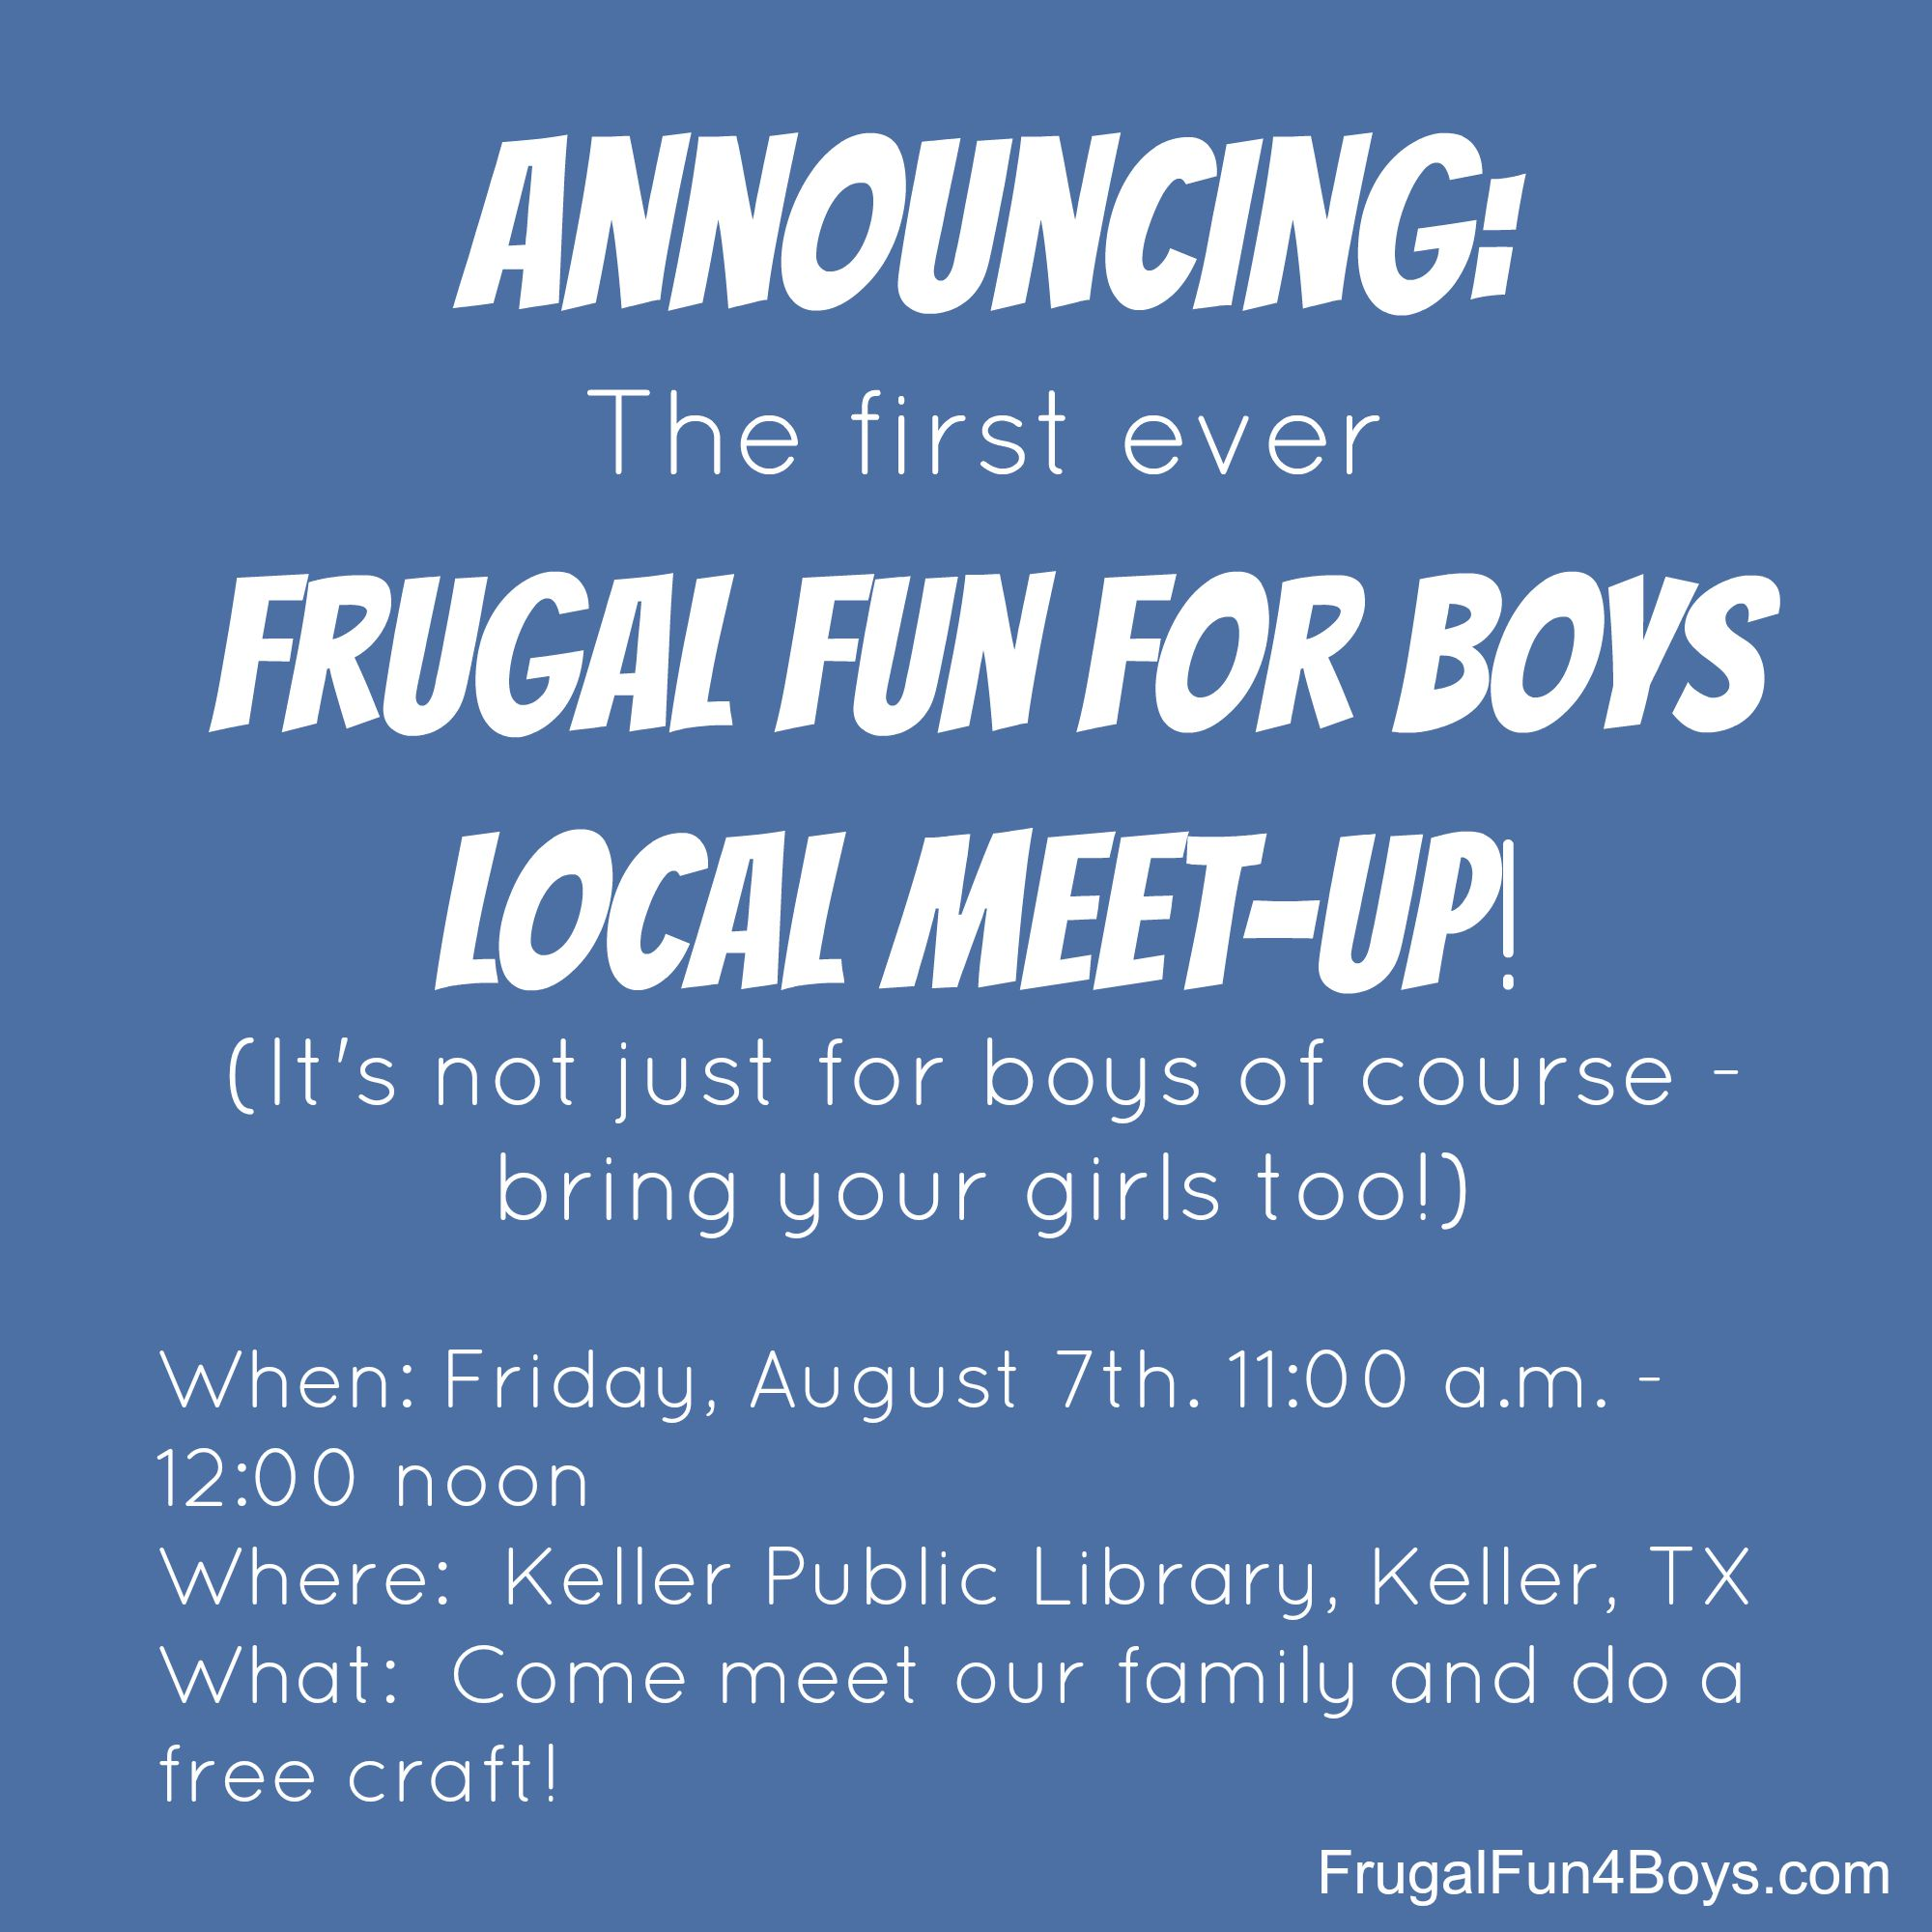 Frugal Fun for Boys - Local Meet-up